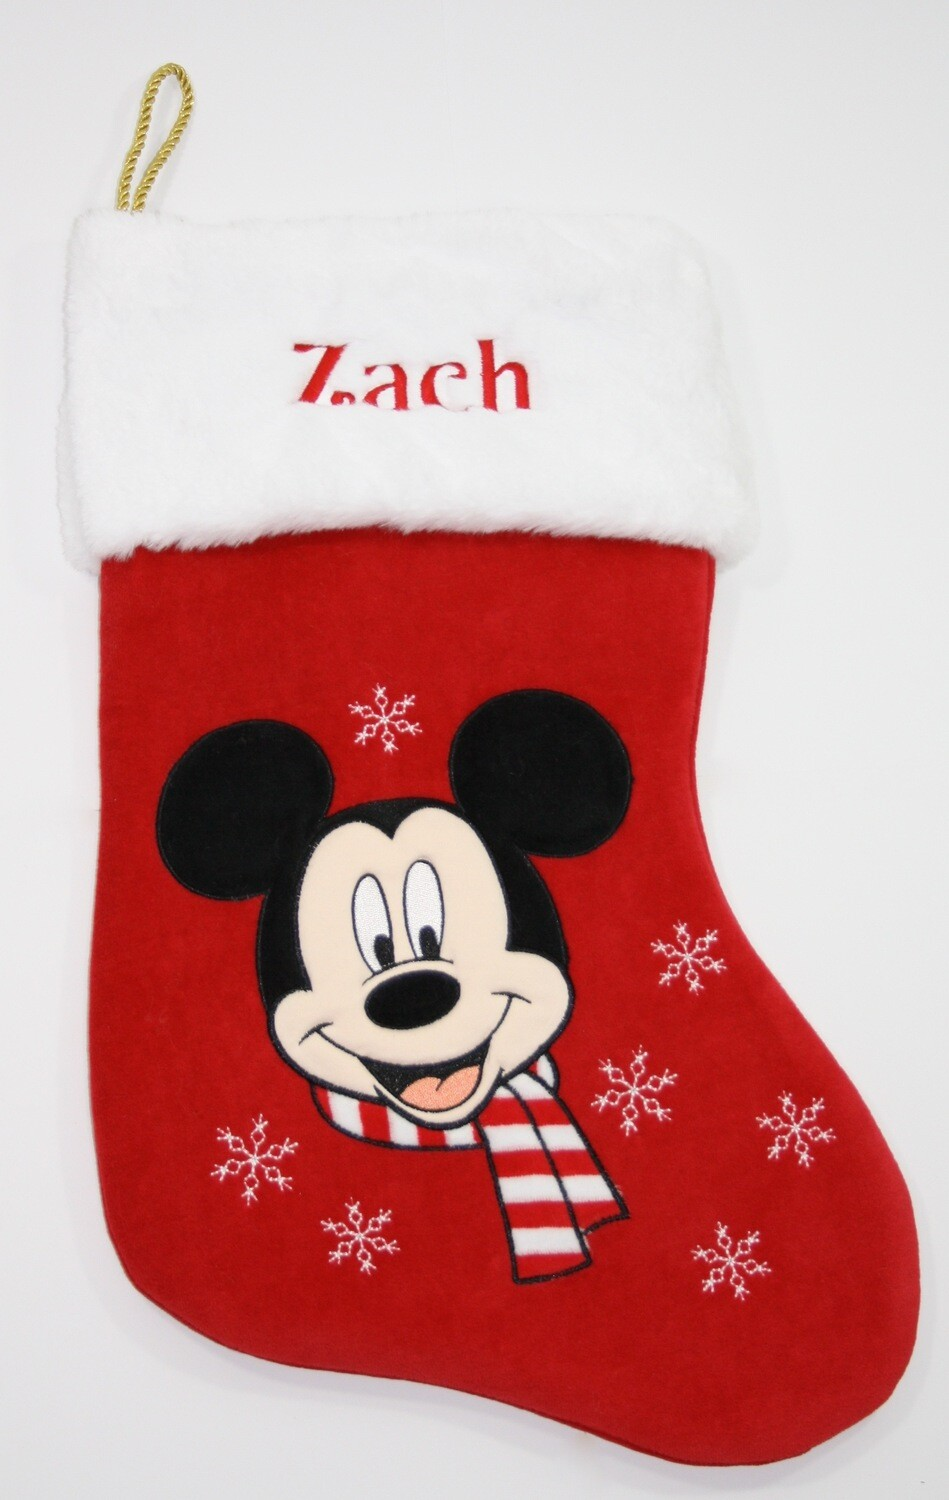 Disney personalised Mickey Mouse Christmas stocking